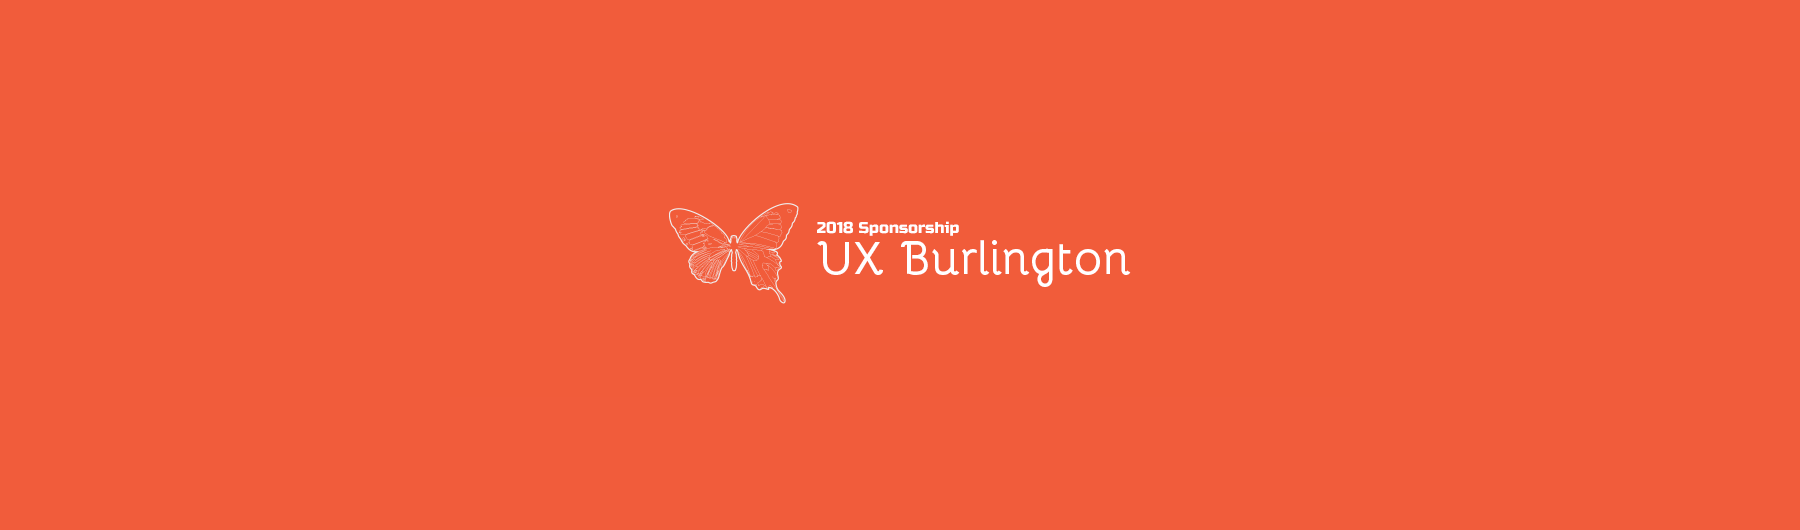 2018 UX Burlington Sponsor